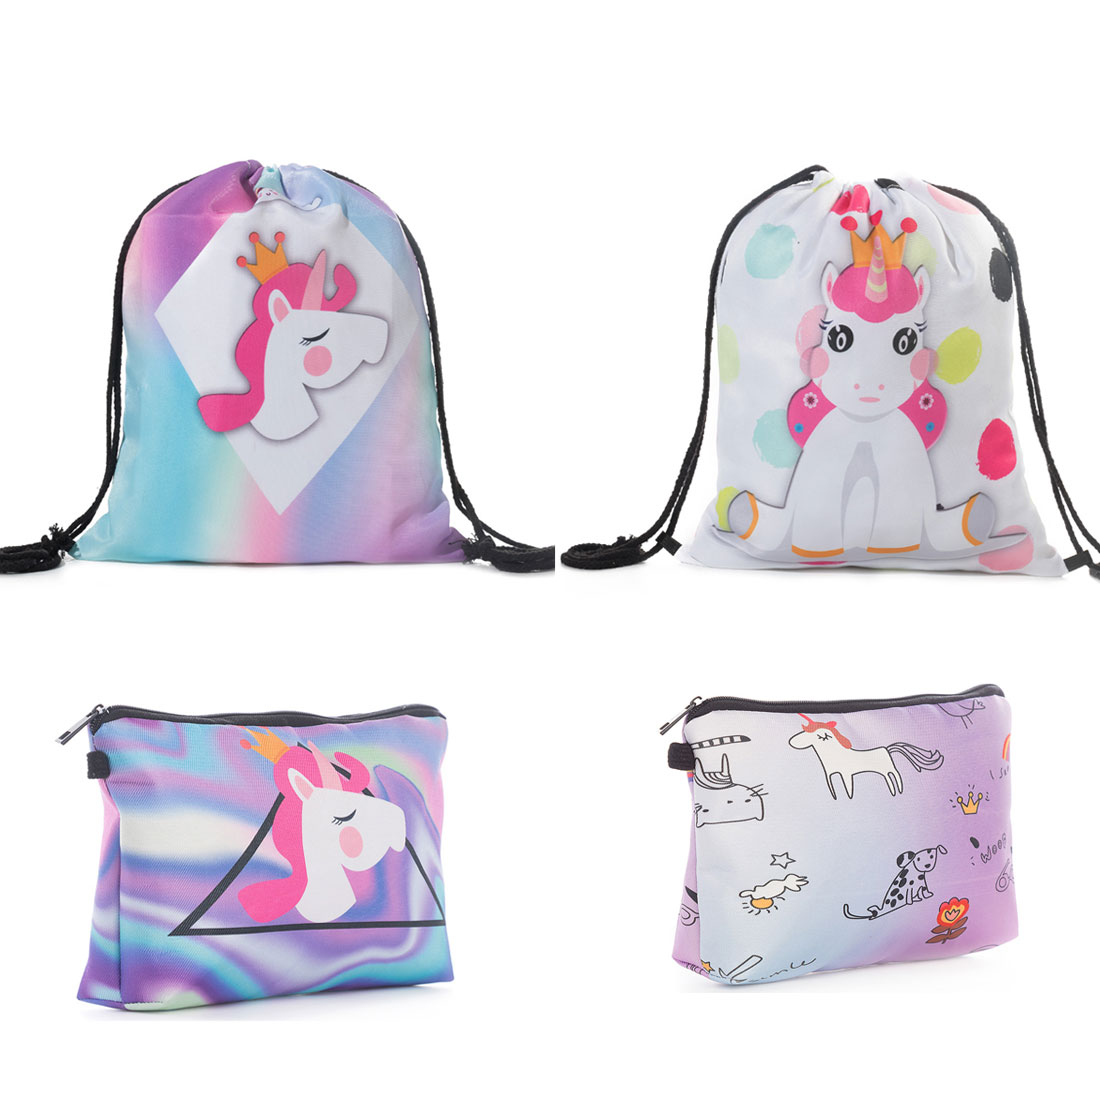 Child Gift Bags Small Cute Bags Cute Cartoon Printed Birthday Party Gift Bags Cheap Dropshipping String Drawstring Backpack